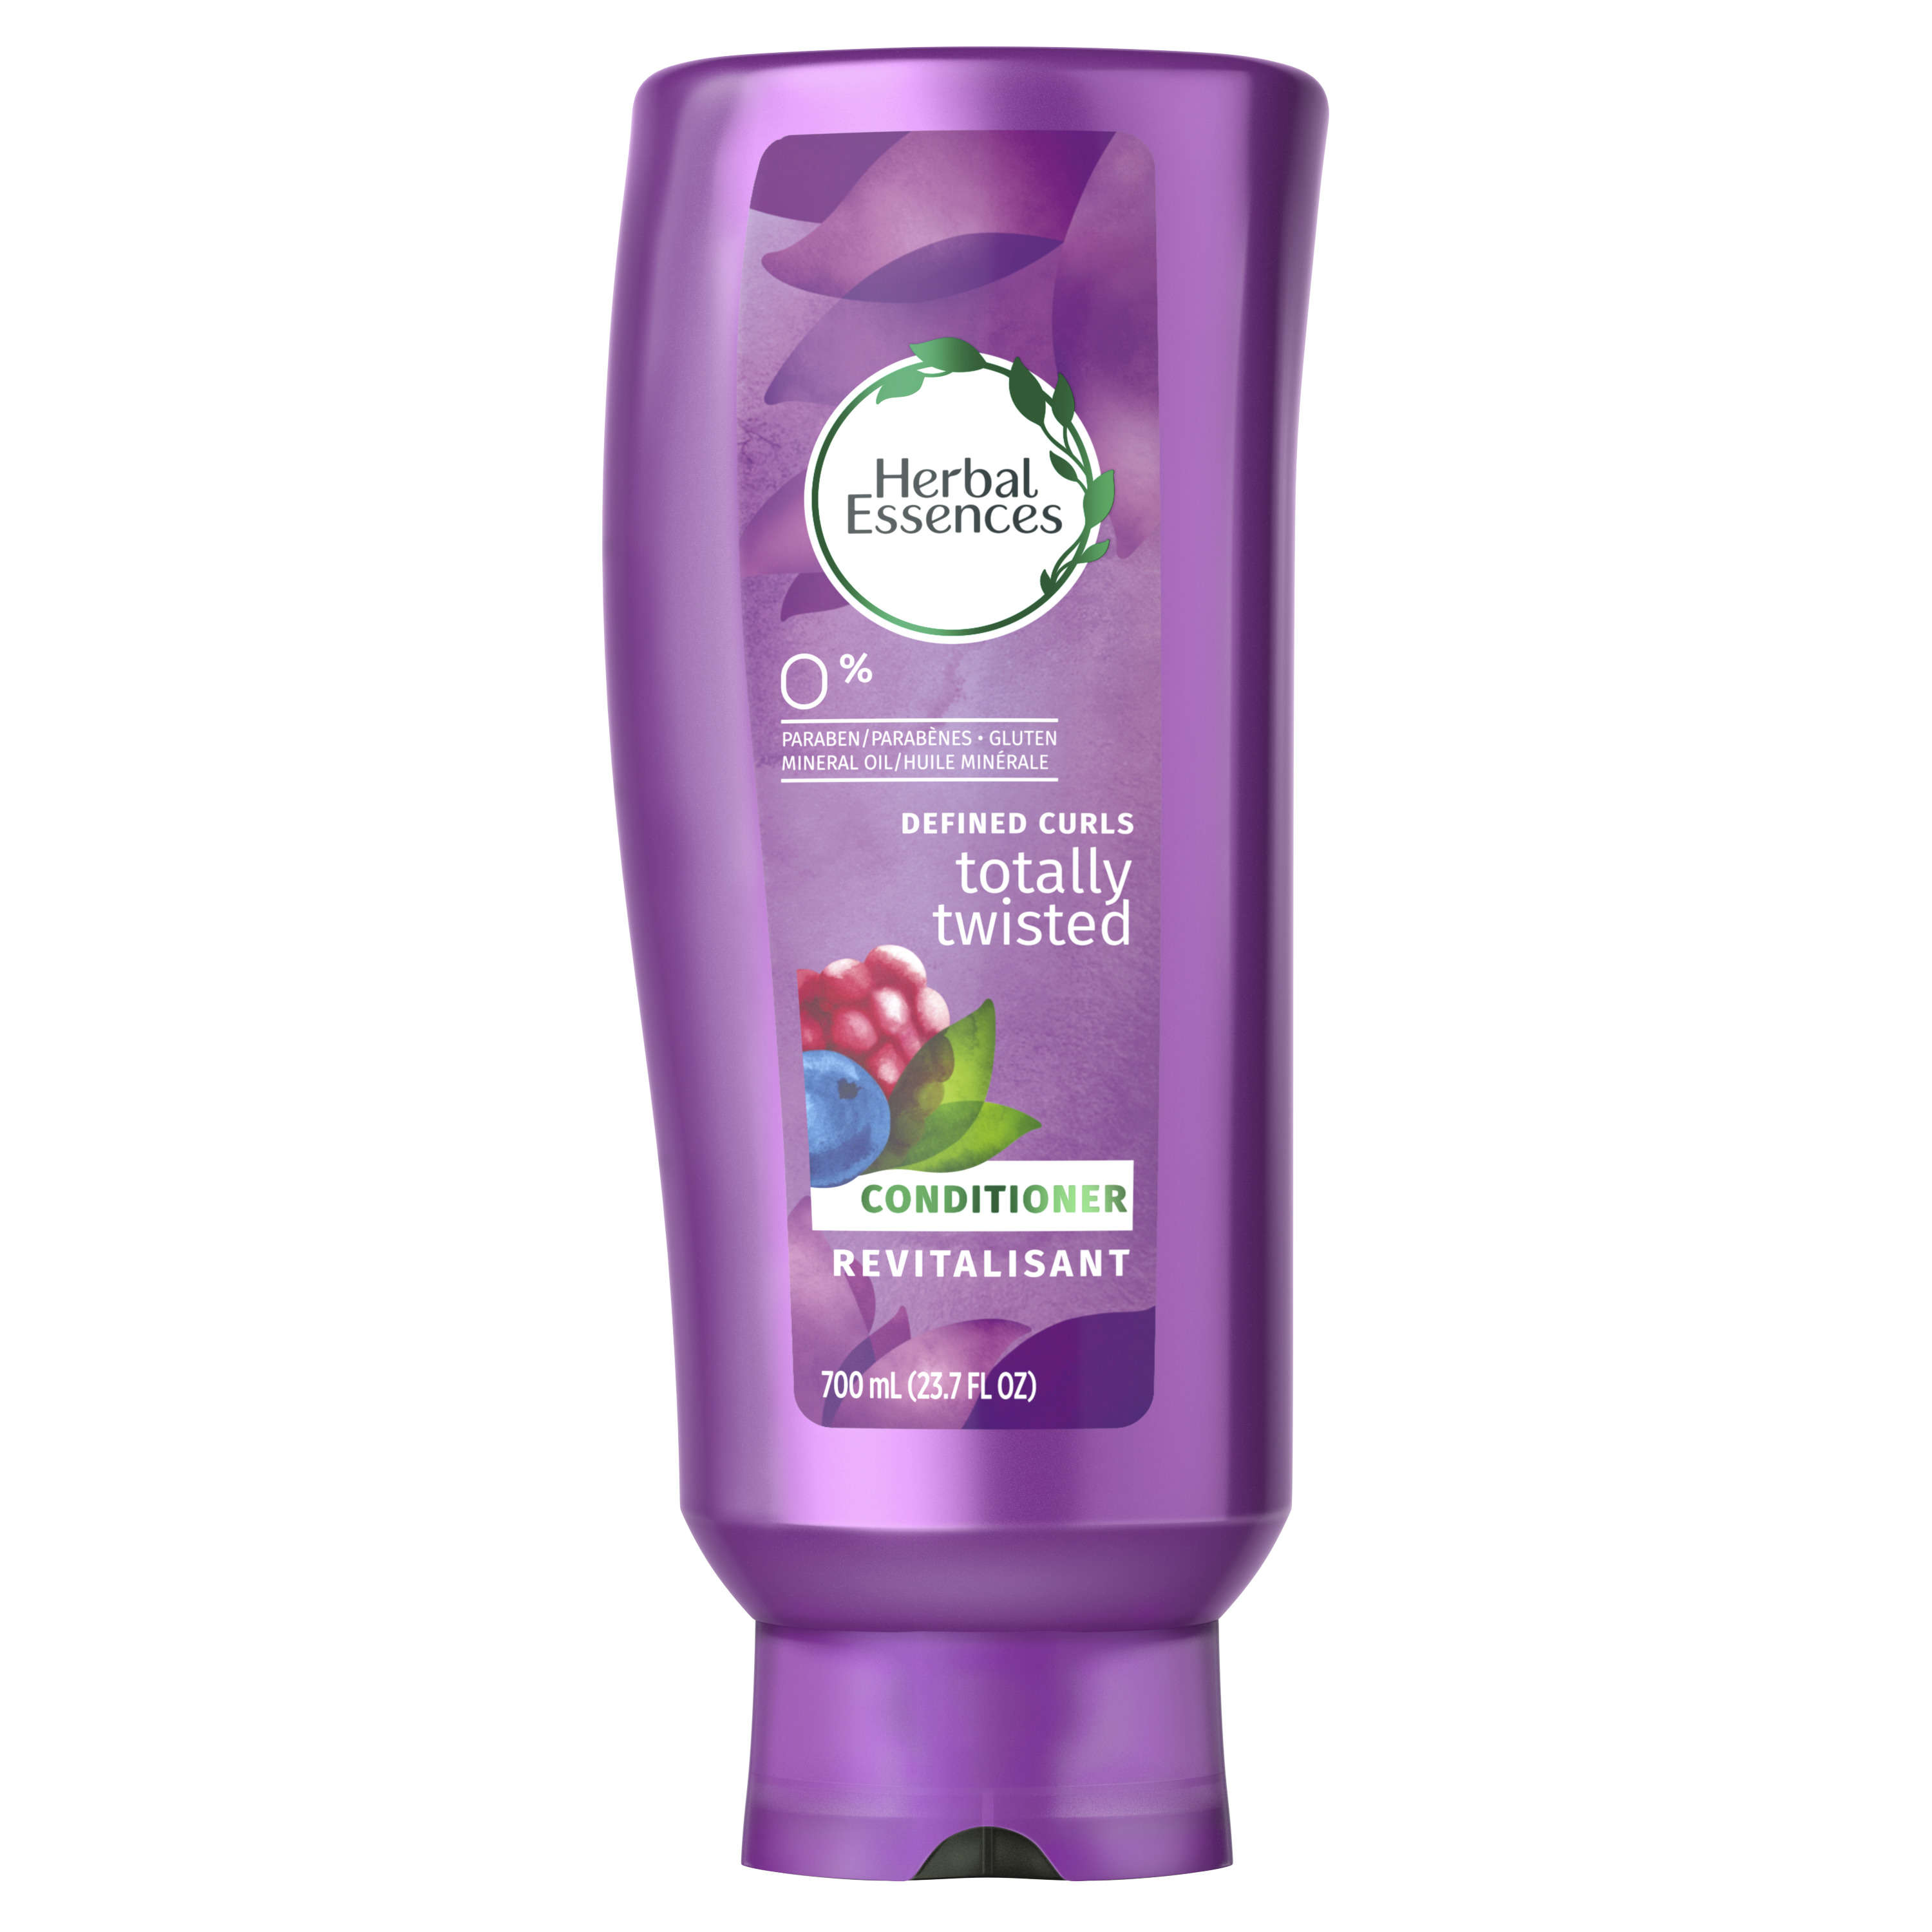 Herbal Essences Totally Twisted Curly Hair Conditioner with Wild Berry Essences, 23.7 fl oz